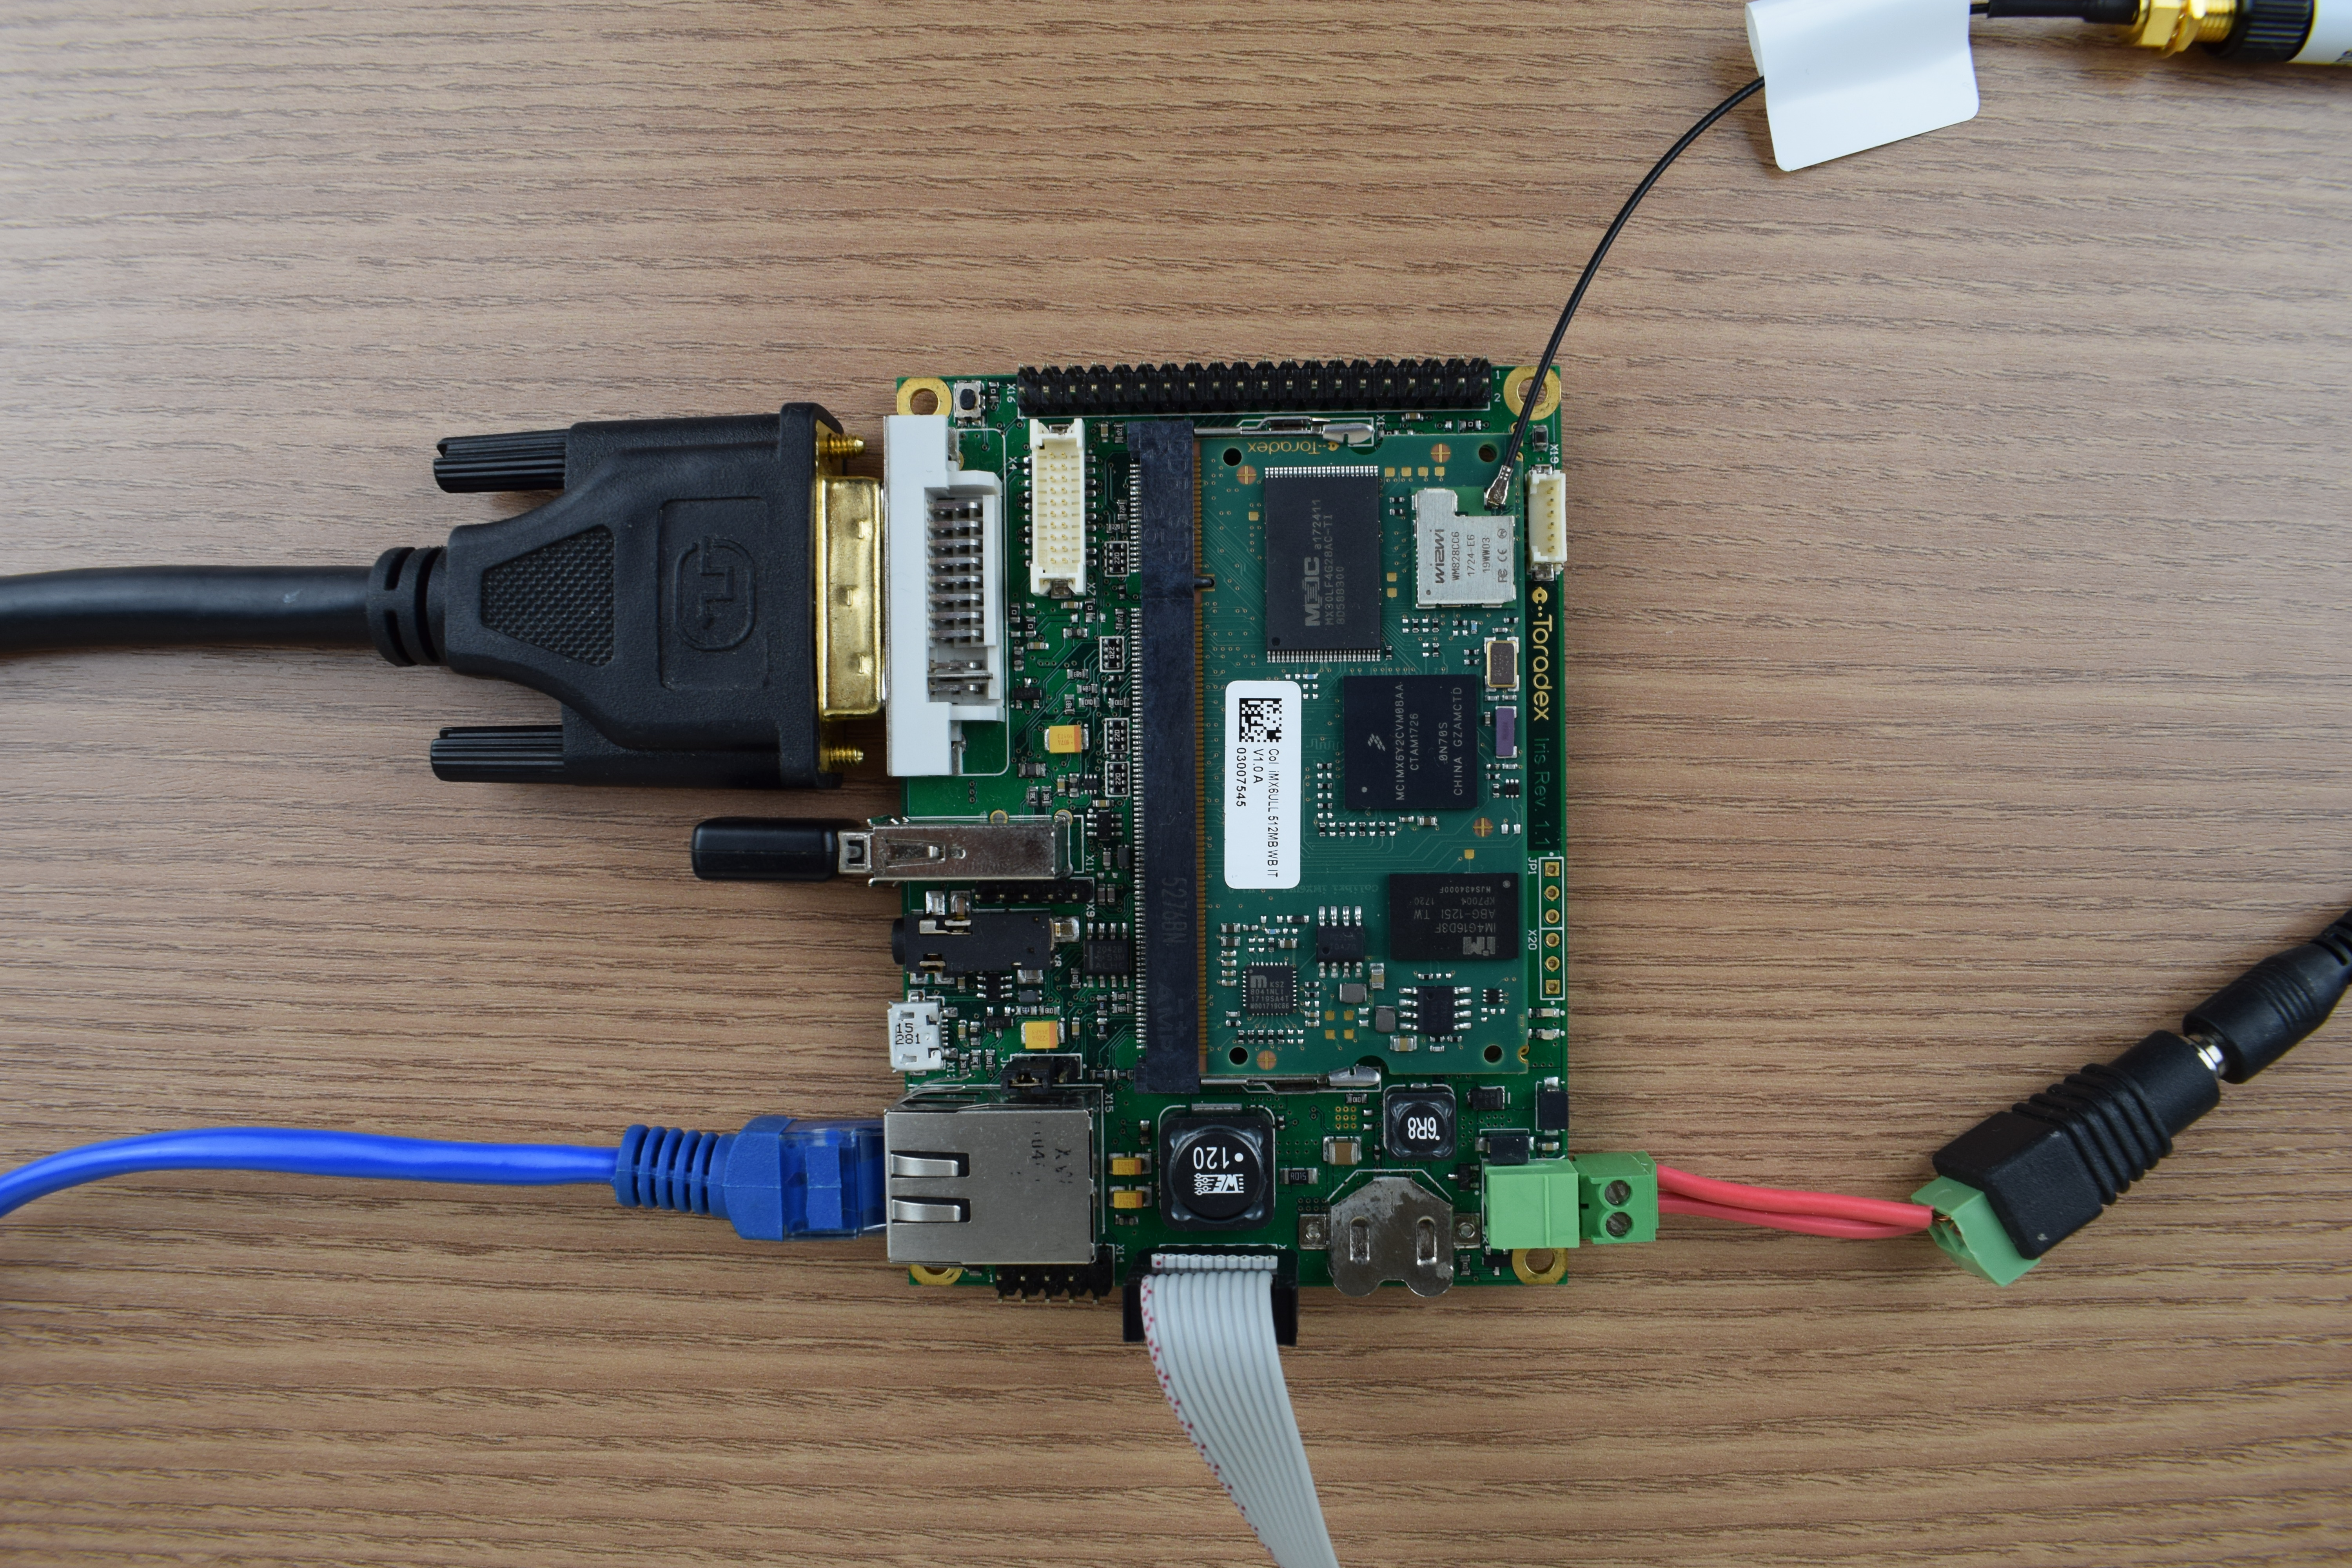 DVI to VGA adapter, Ethernet, USB keyboard and power supply connected to the Iris Carrier Board